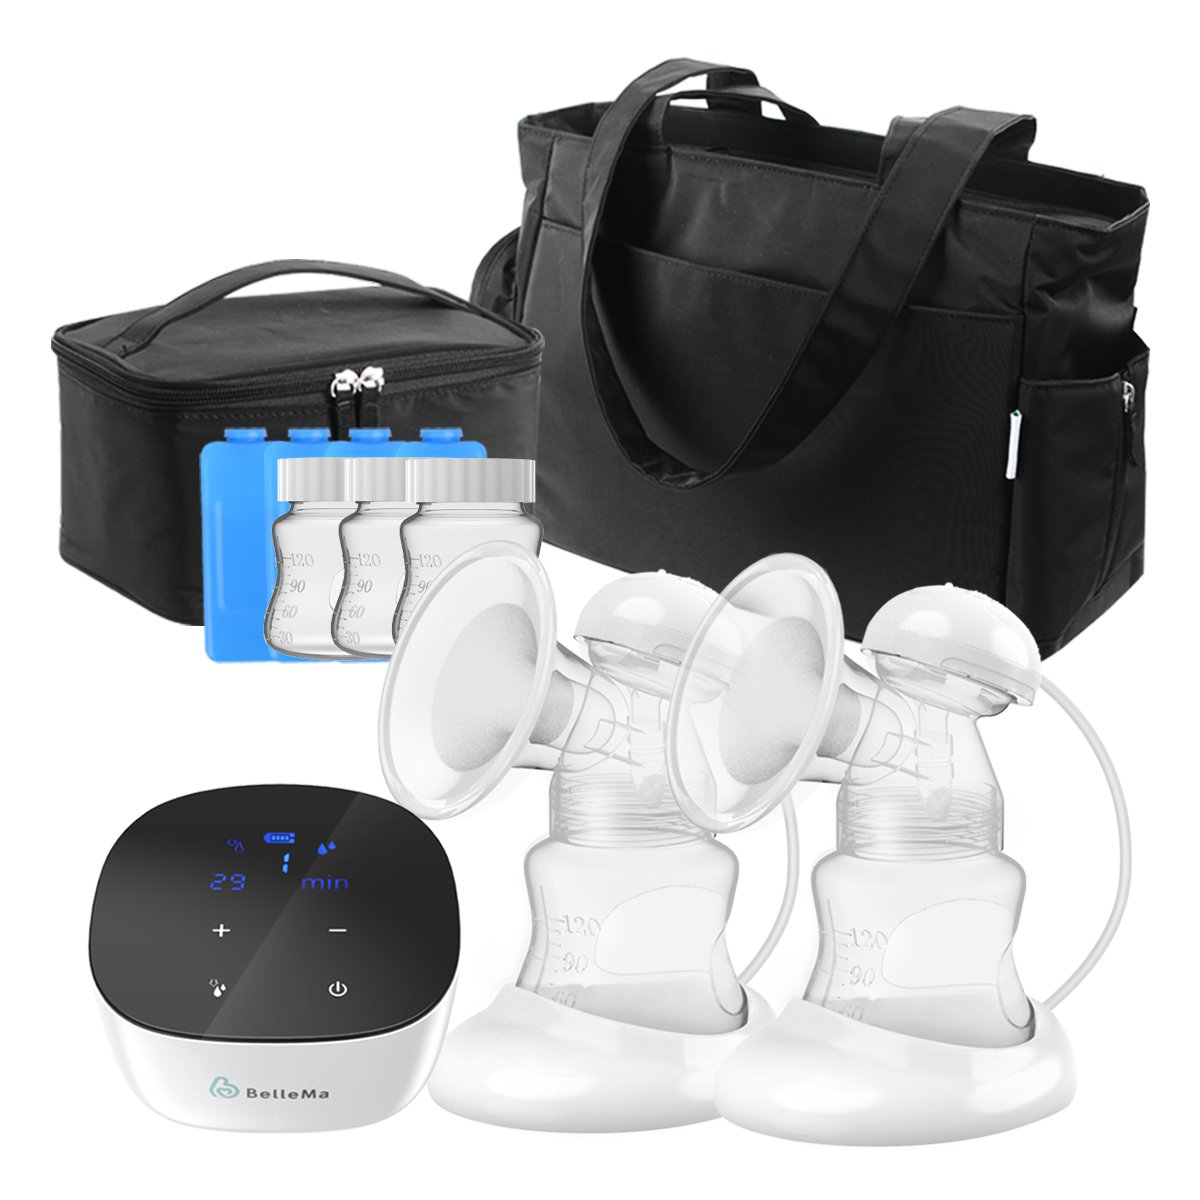 Electric Breast Pump, BelleMa E5 Pro Hospital Grade Breast Pump, 2 Modes & 9 Suction Levels Double Breast Pump, LCD Touch Control, Memory Function, Li-battery Silent Breast Pump Travel/Office/Home Use